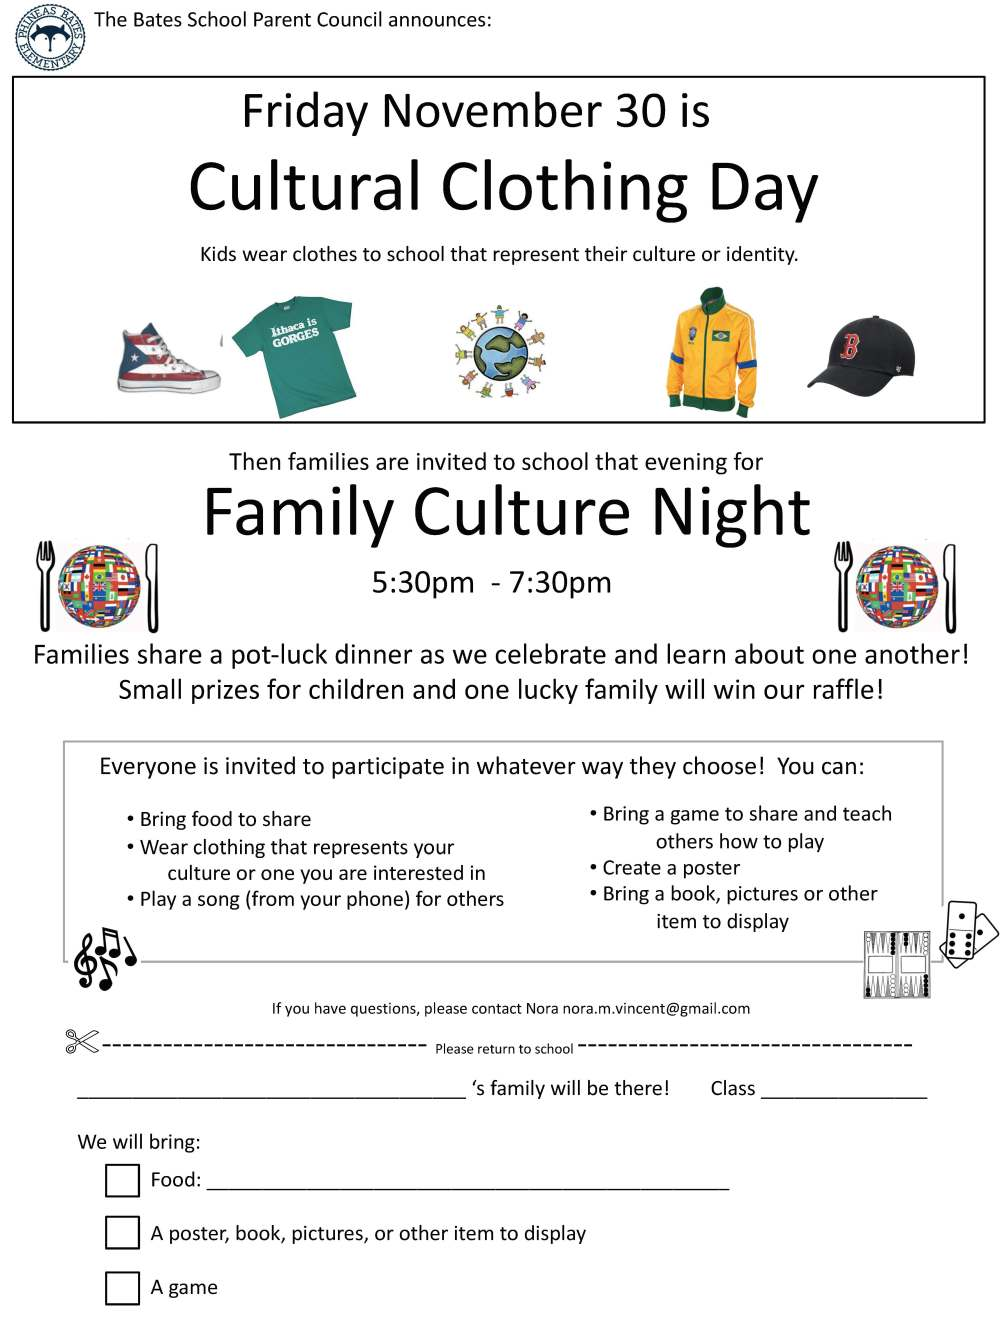 Family Culture Night Flyer 2018_Page_1